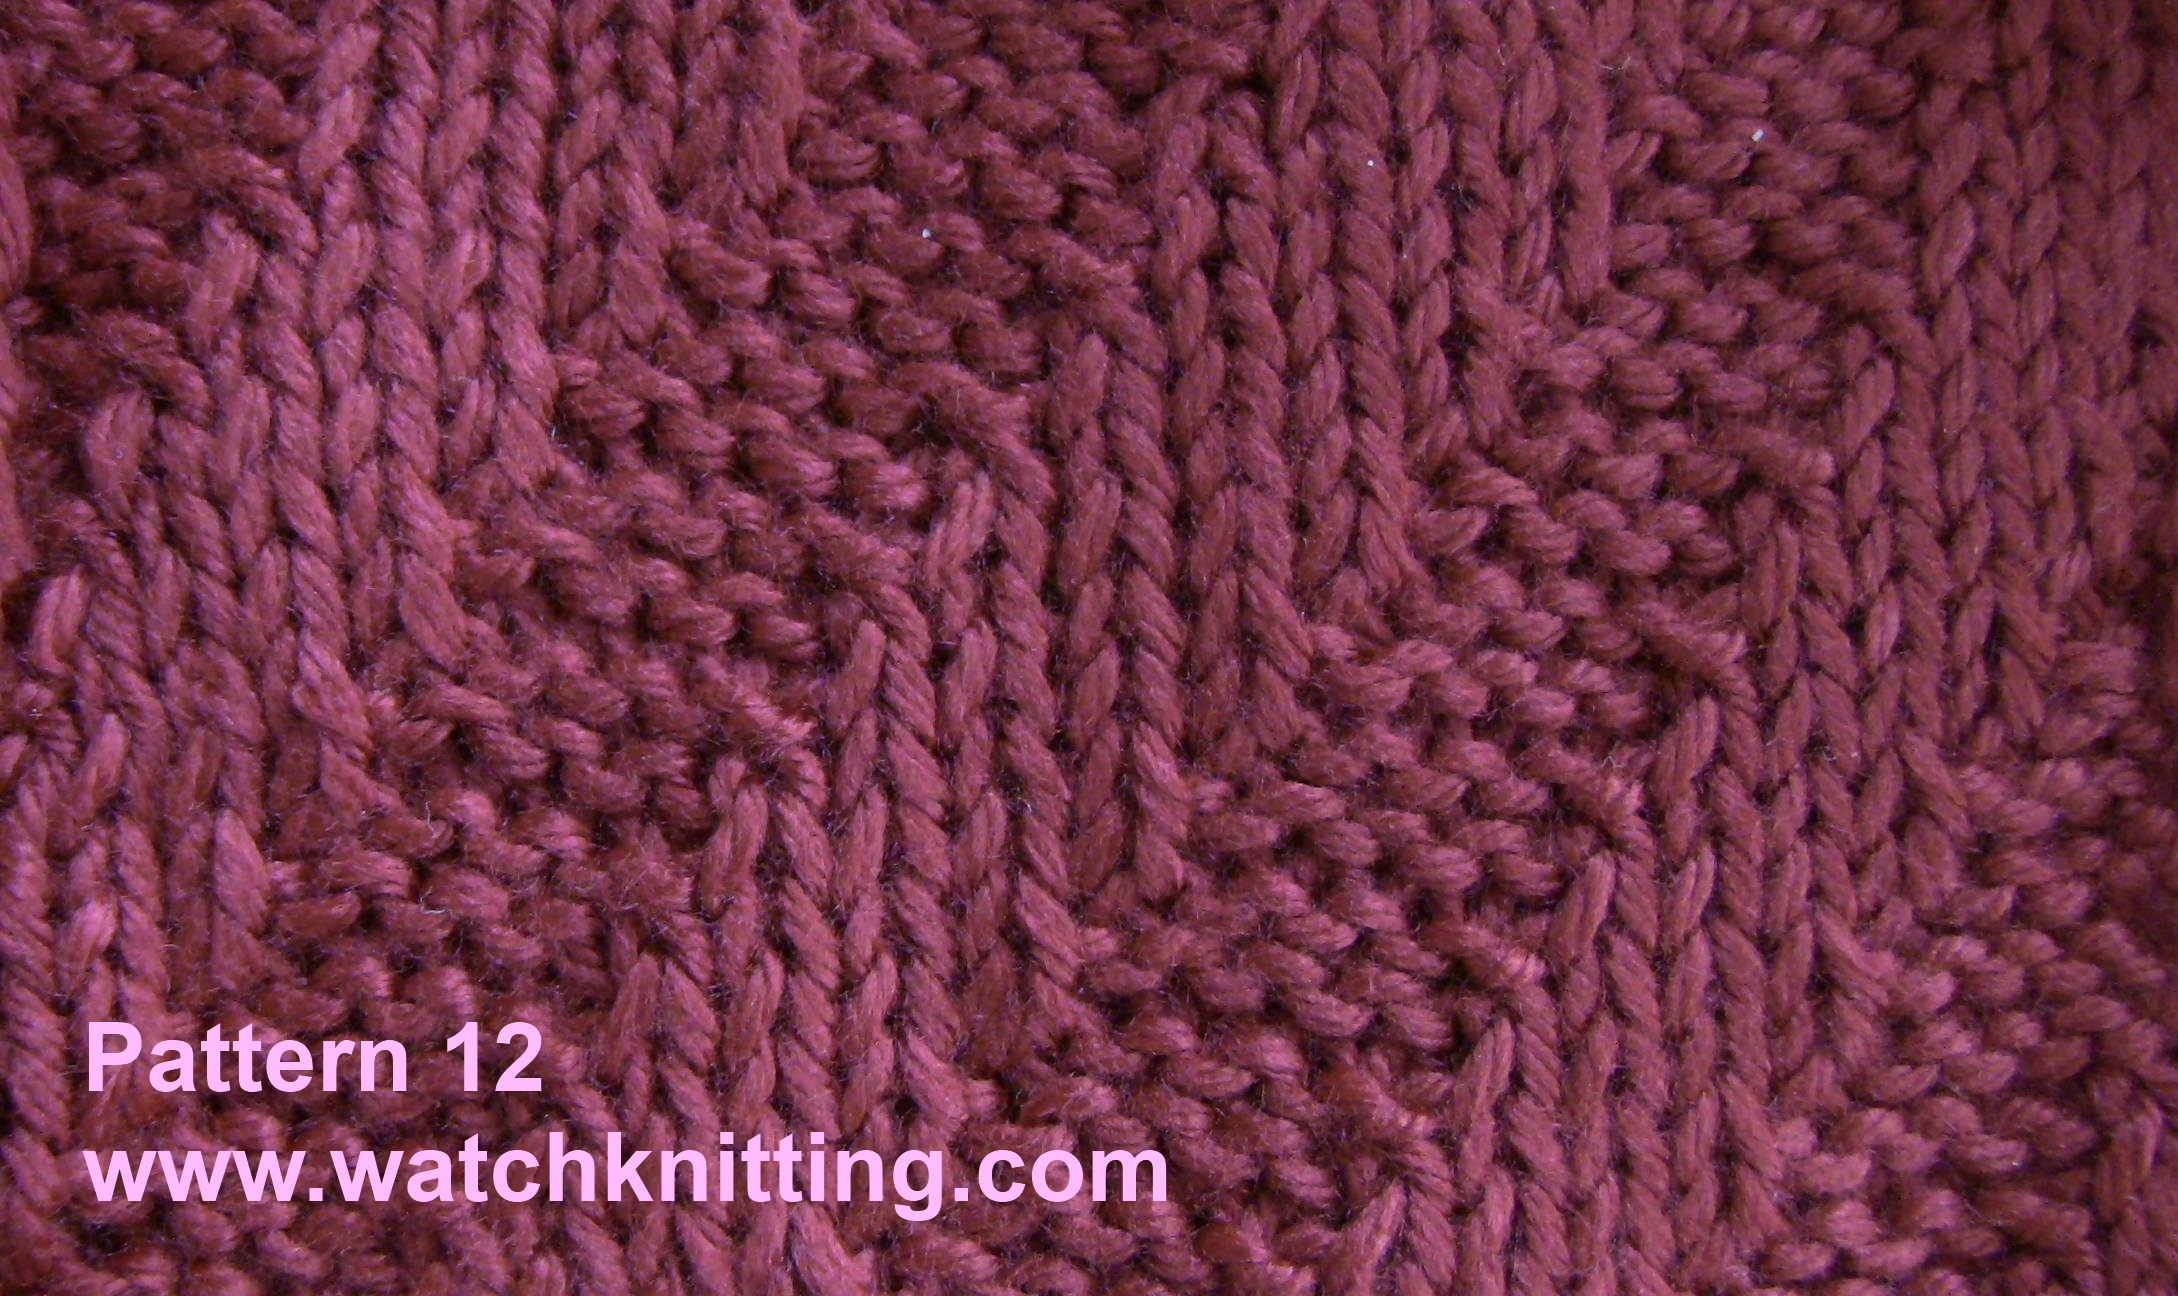 Simple Knitting Patterns : Pattern 12 Simple Knitting Patterns www.watchknitting.com